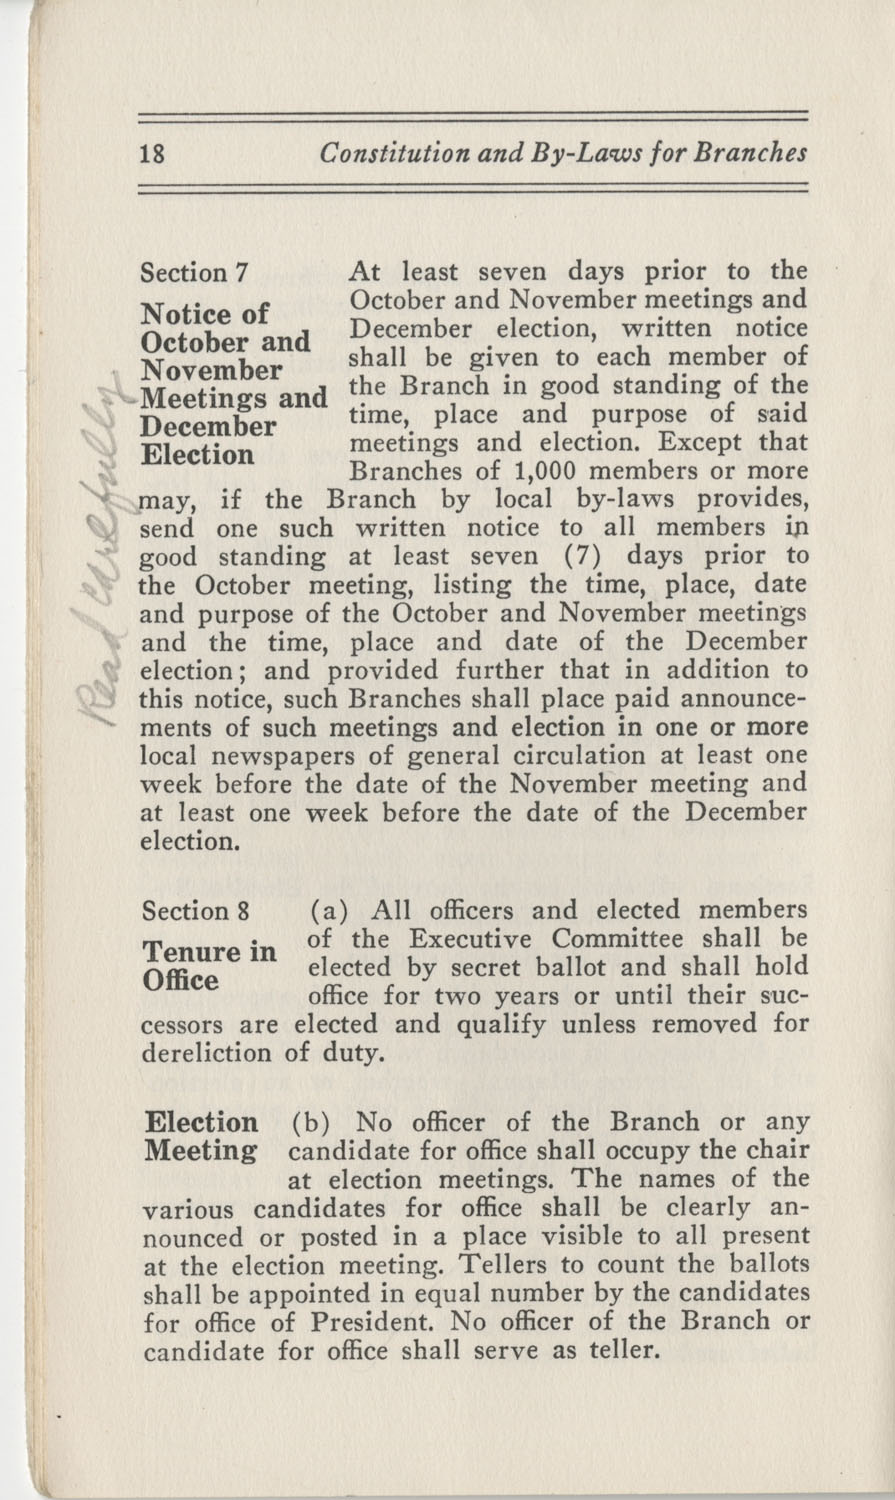 Constitutions and By-Laws, September 1960, Page 18